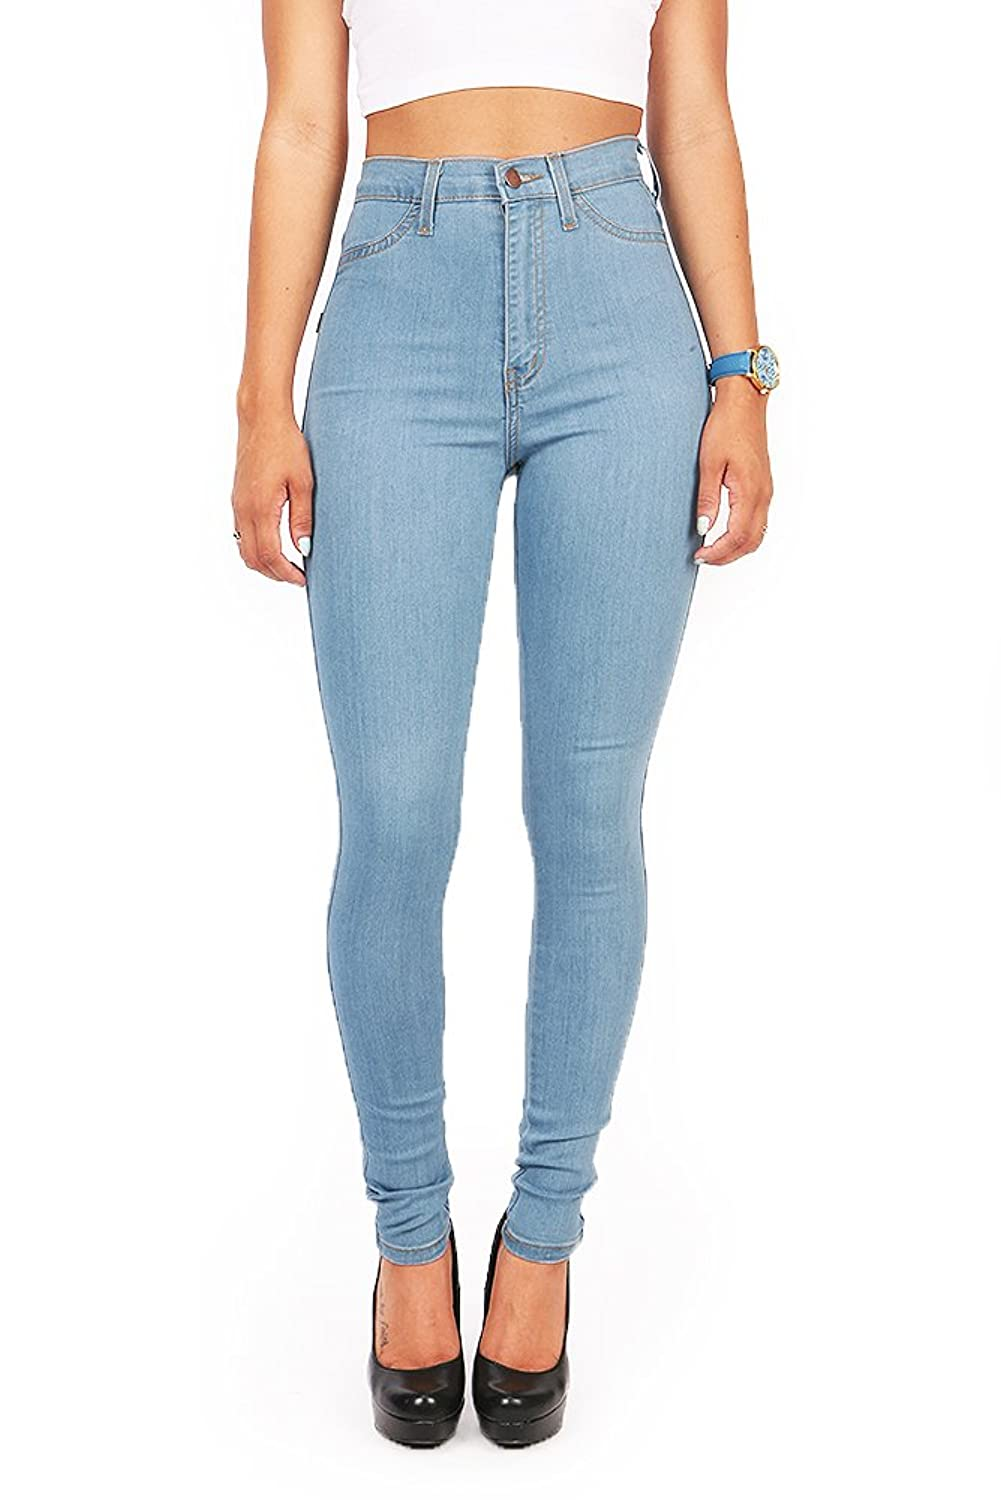 Womens Light Blue Skinny Jeans